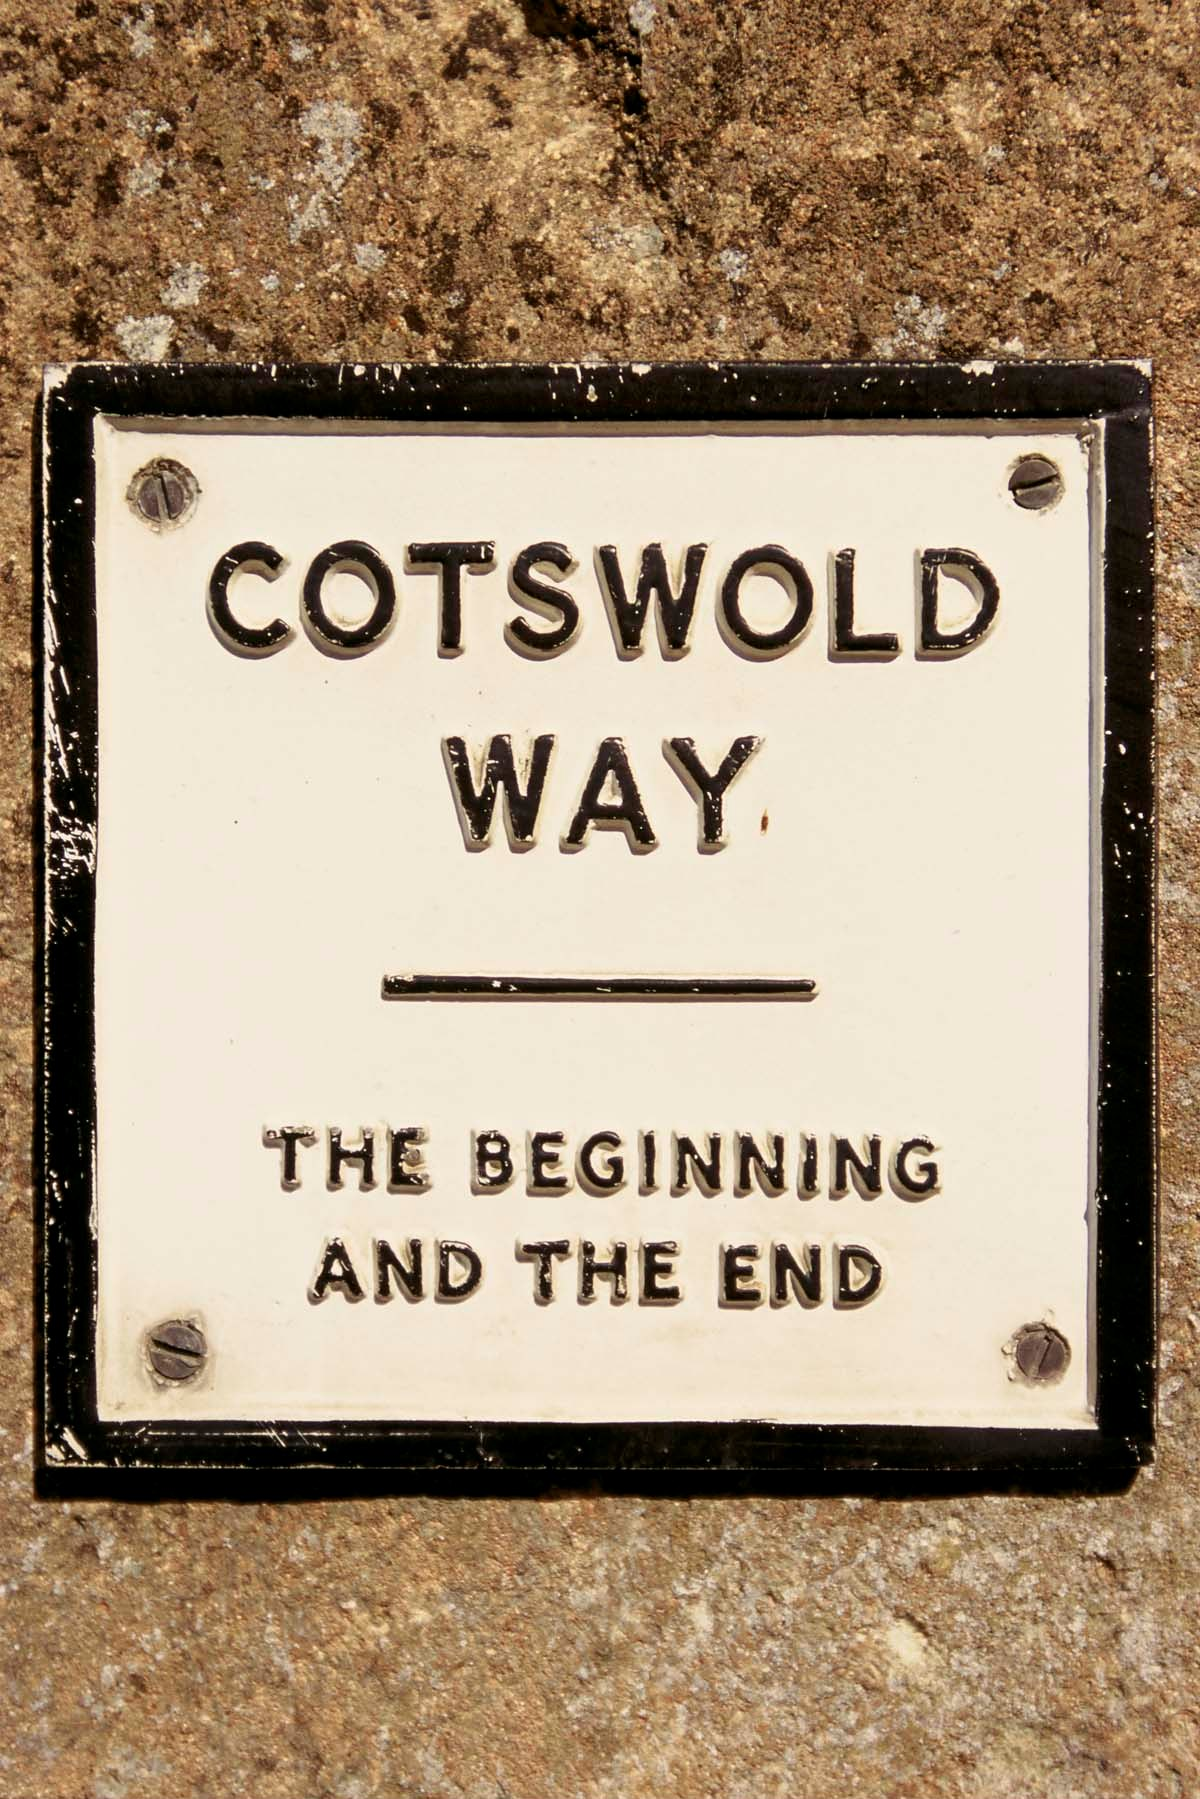 The Cotswold Way begins and ends in Chipping Campden AND Bath...depending which end you start. Picture © Cotswolds Conservation Board